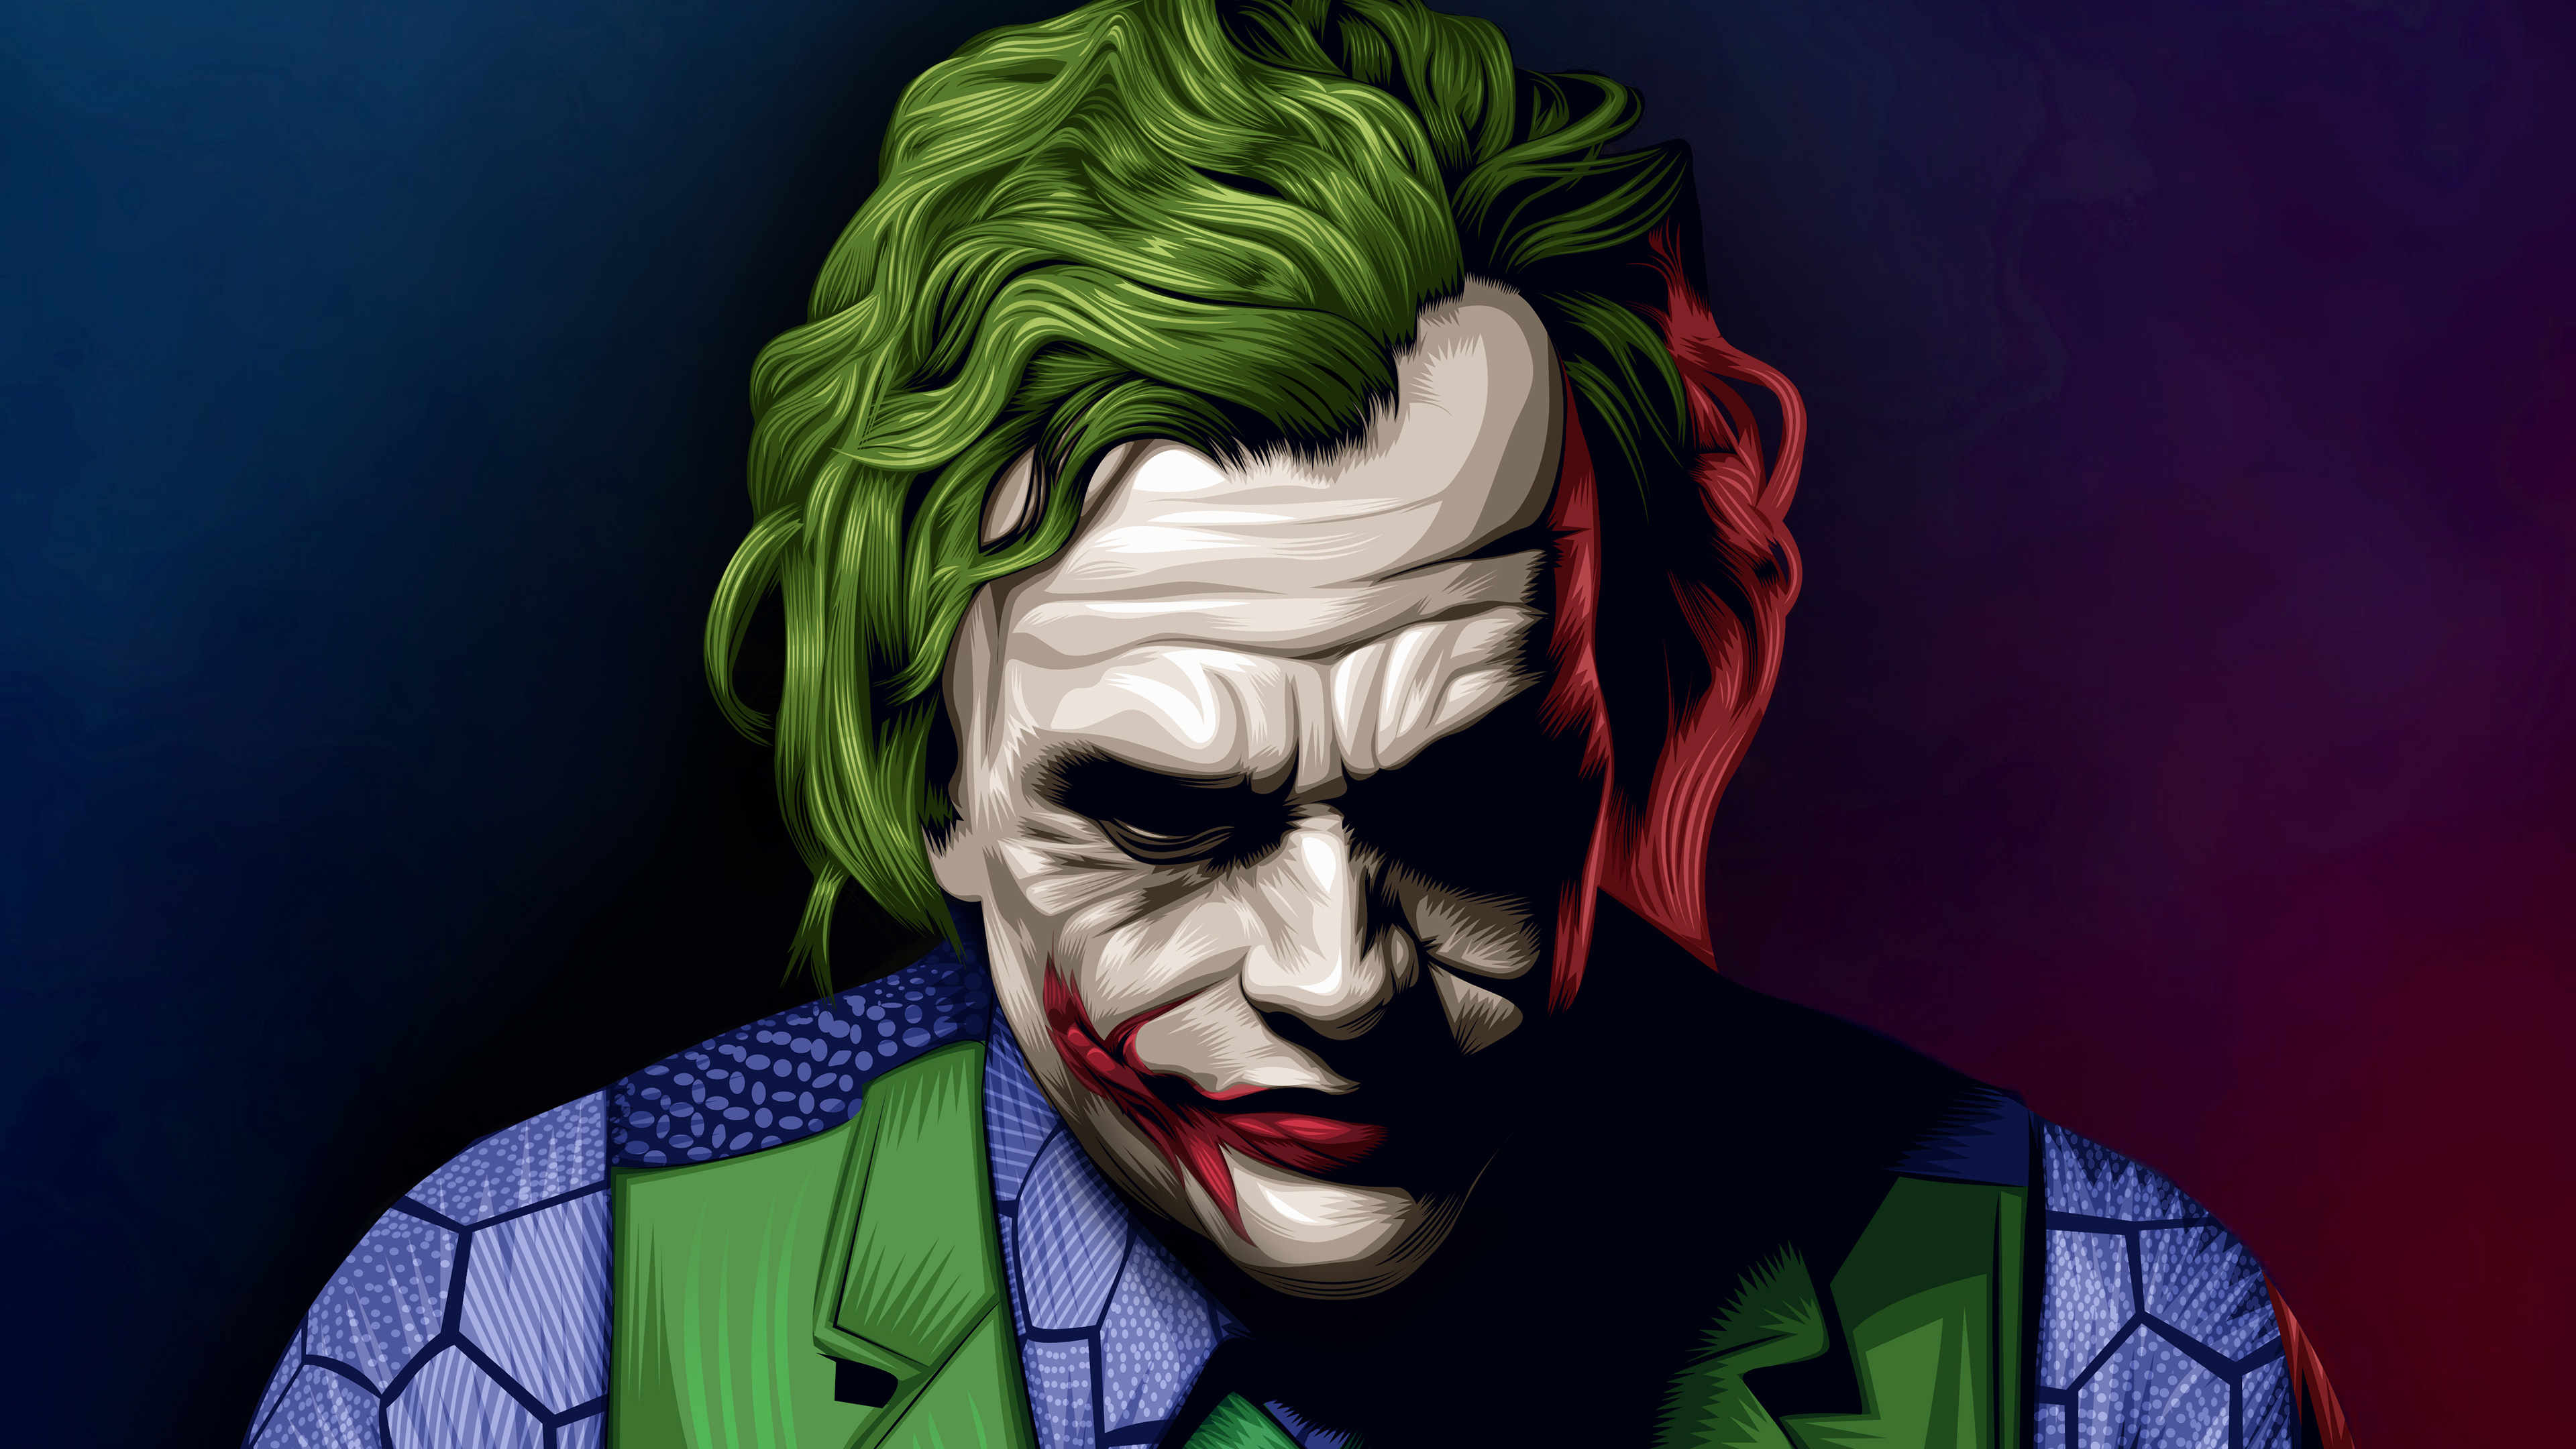 Joker heath ledger illustration hd superheroes 4k for Joker immagini hd